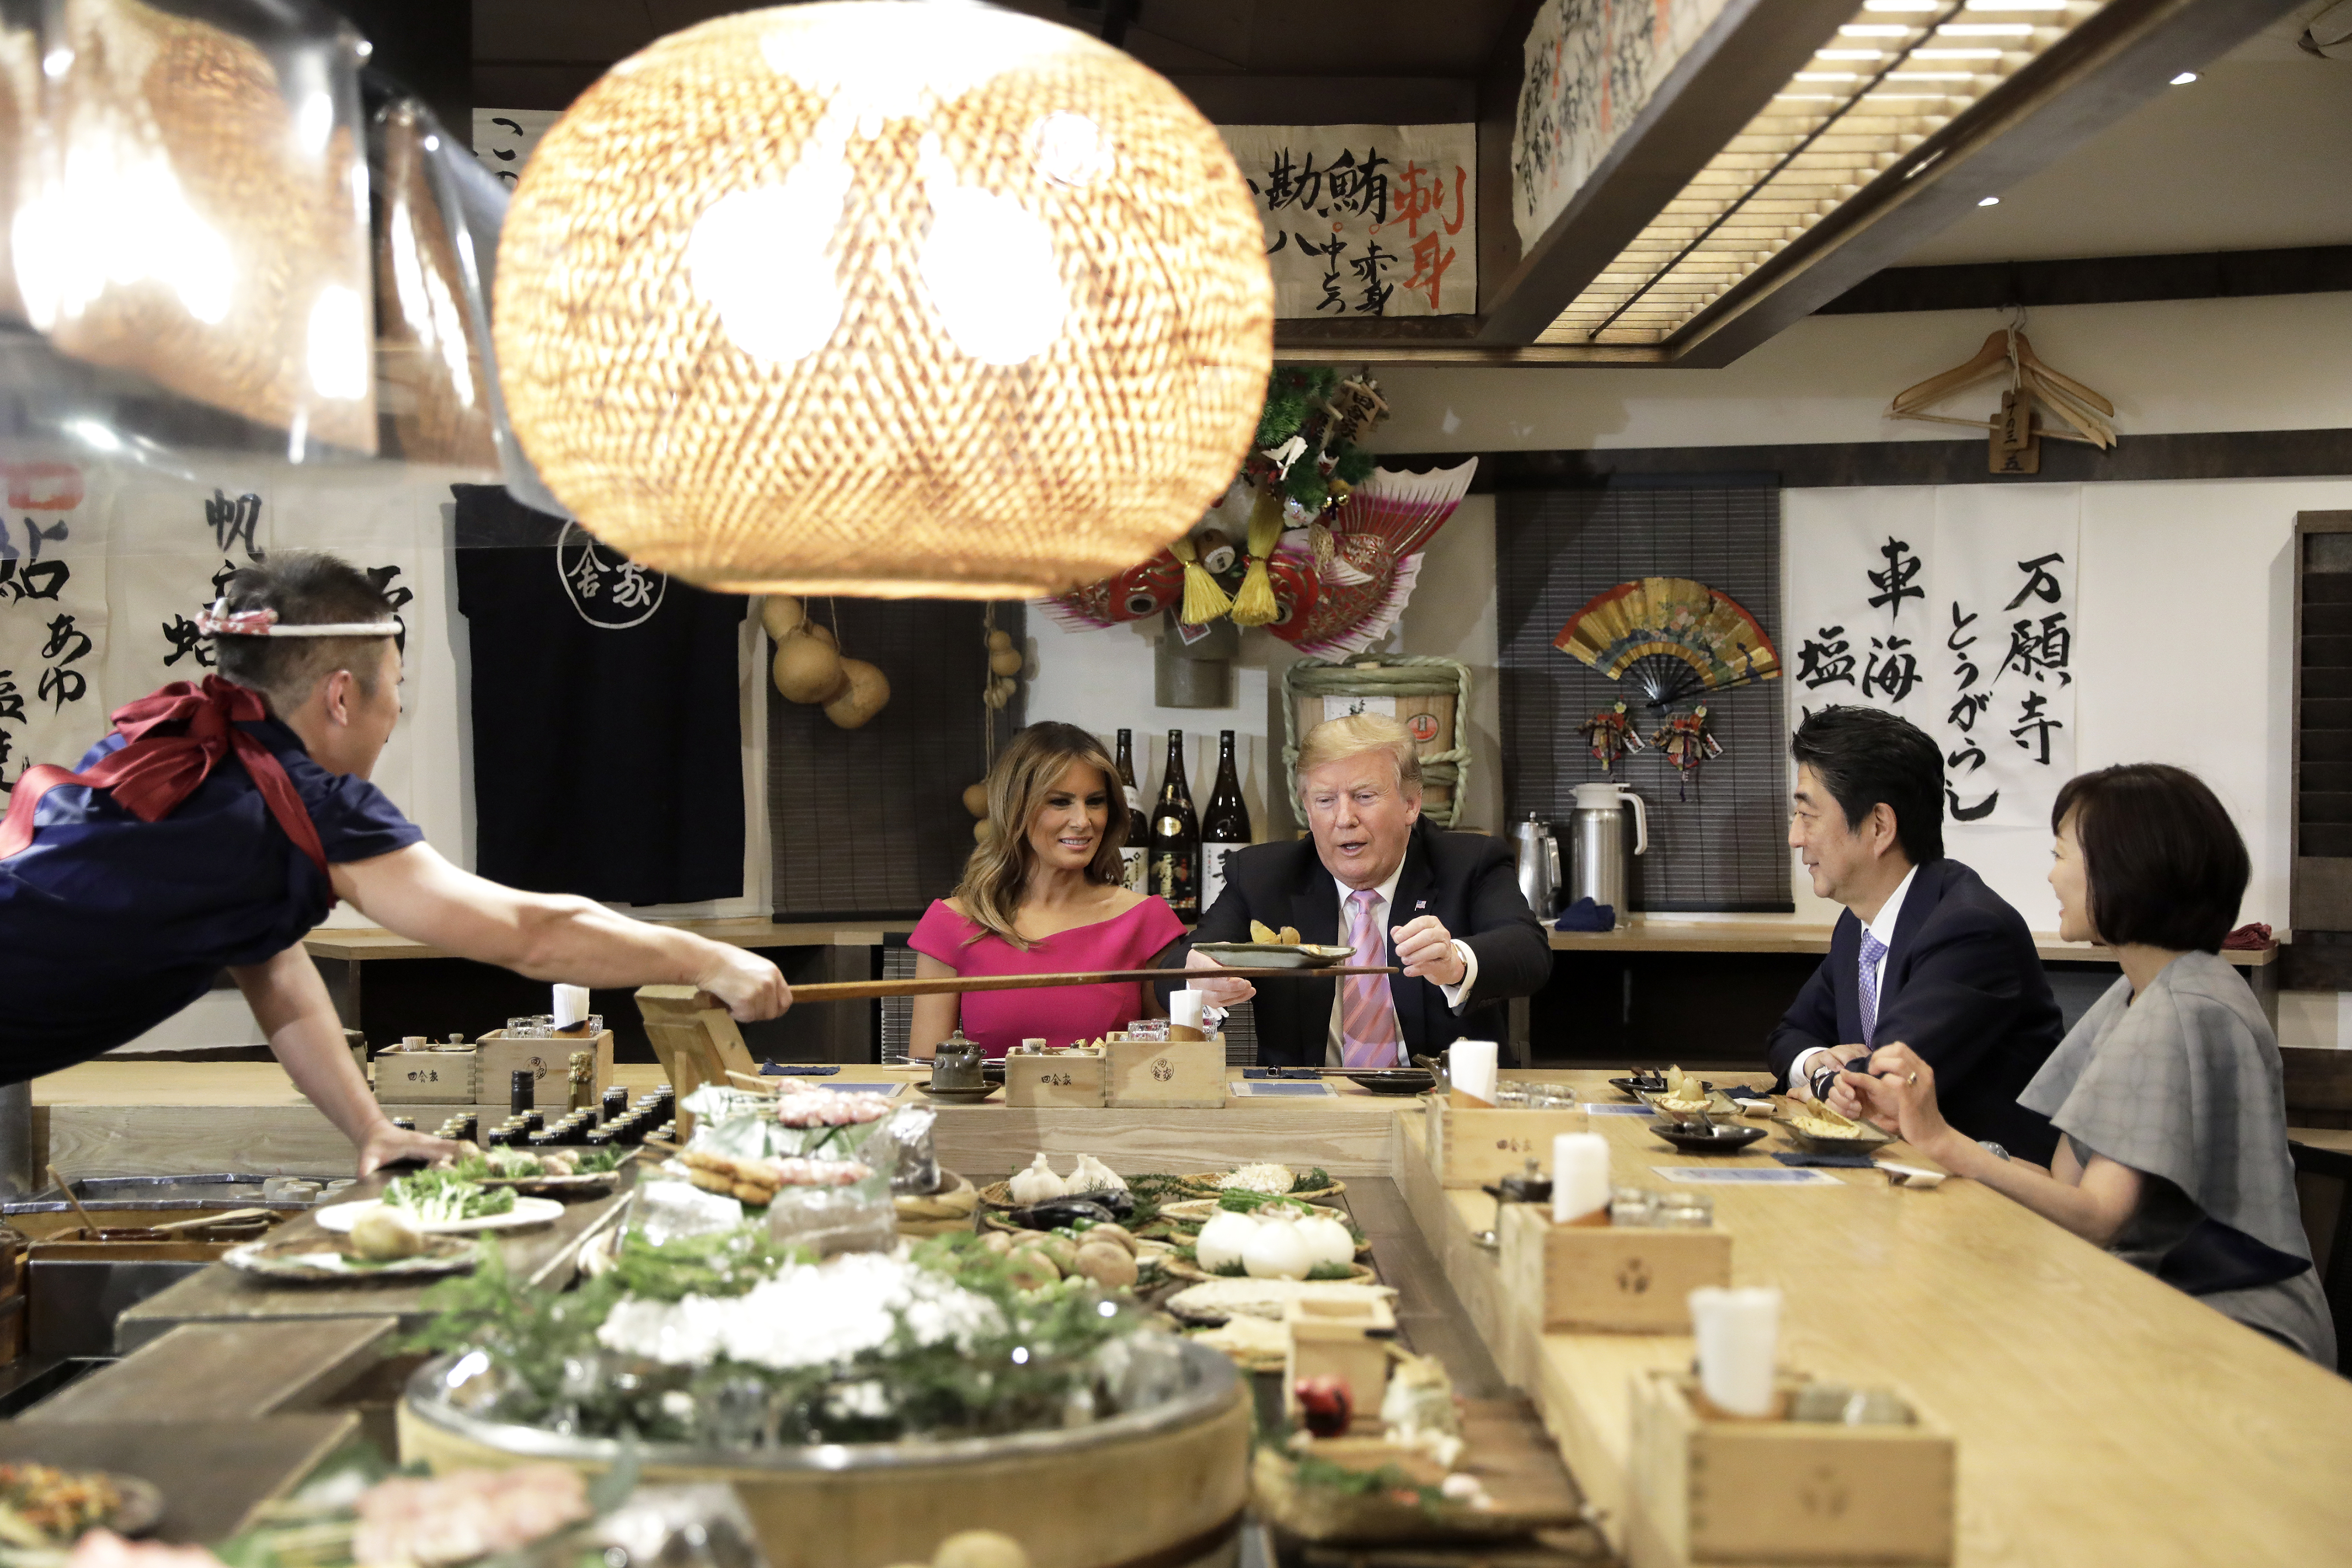 TOKYO, JAPAN - MAY 26: U.S. President Donald Trump, center, is served a baked potato with butter while sitting at a counter with First Lady Melania Trump, second left, Shinzo Abe, Japan's Prime Minister, second right, and Akie Abe, wife of Shinzo Abe, right, during a dinner at the Inakaya restaurant in the Roppongi district on May 26, 2019 in Tokyo, Japan. (Photo by Kiyoshi Ota - Pool/Getty Images)